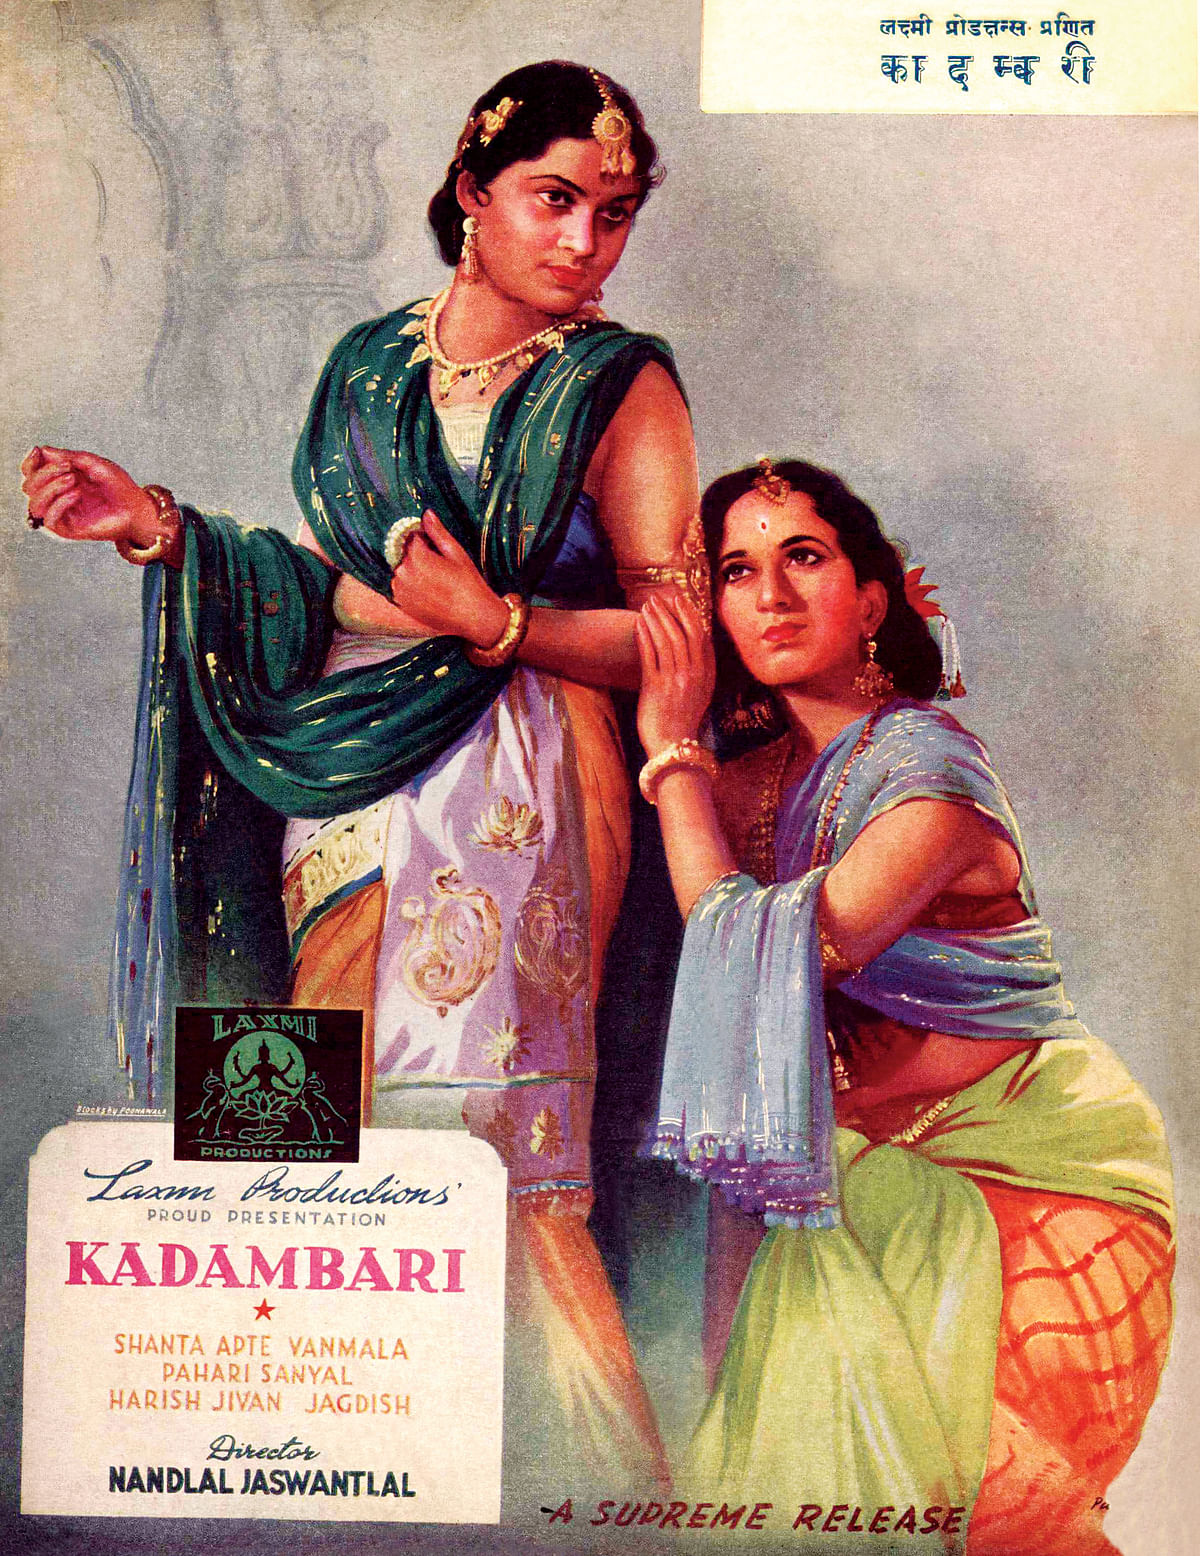 Film poster of <i>Kadambari</i>, 1944, from the NFAI archives.